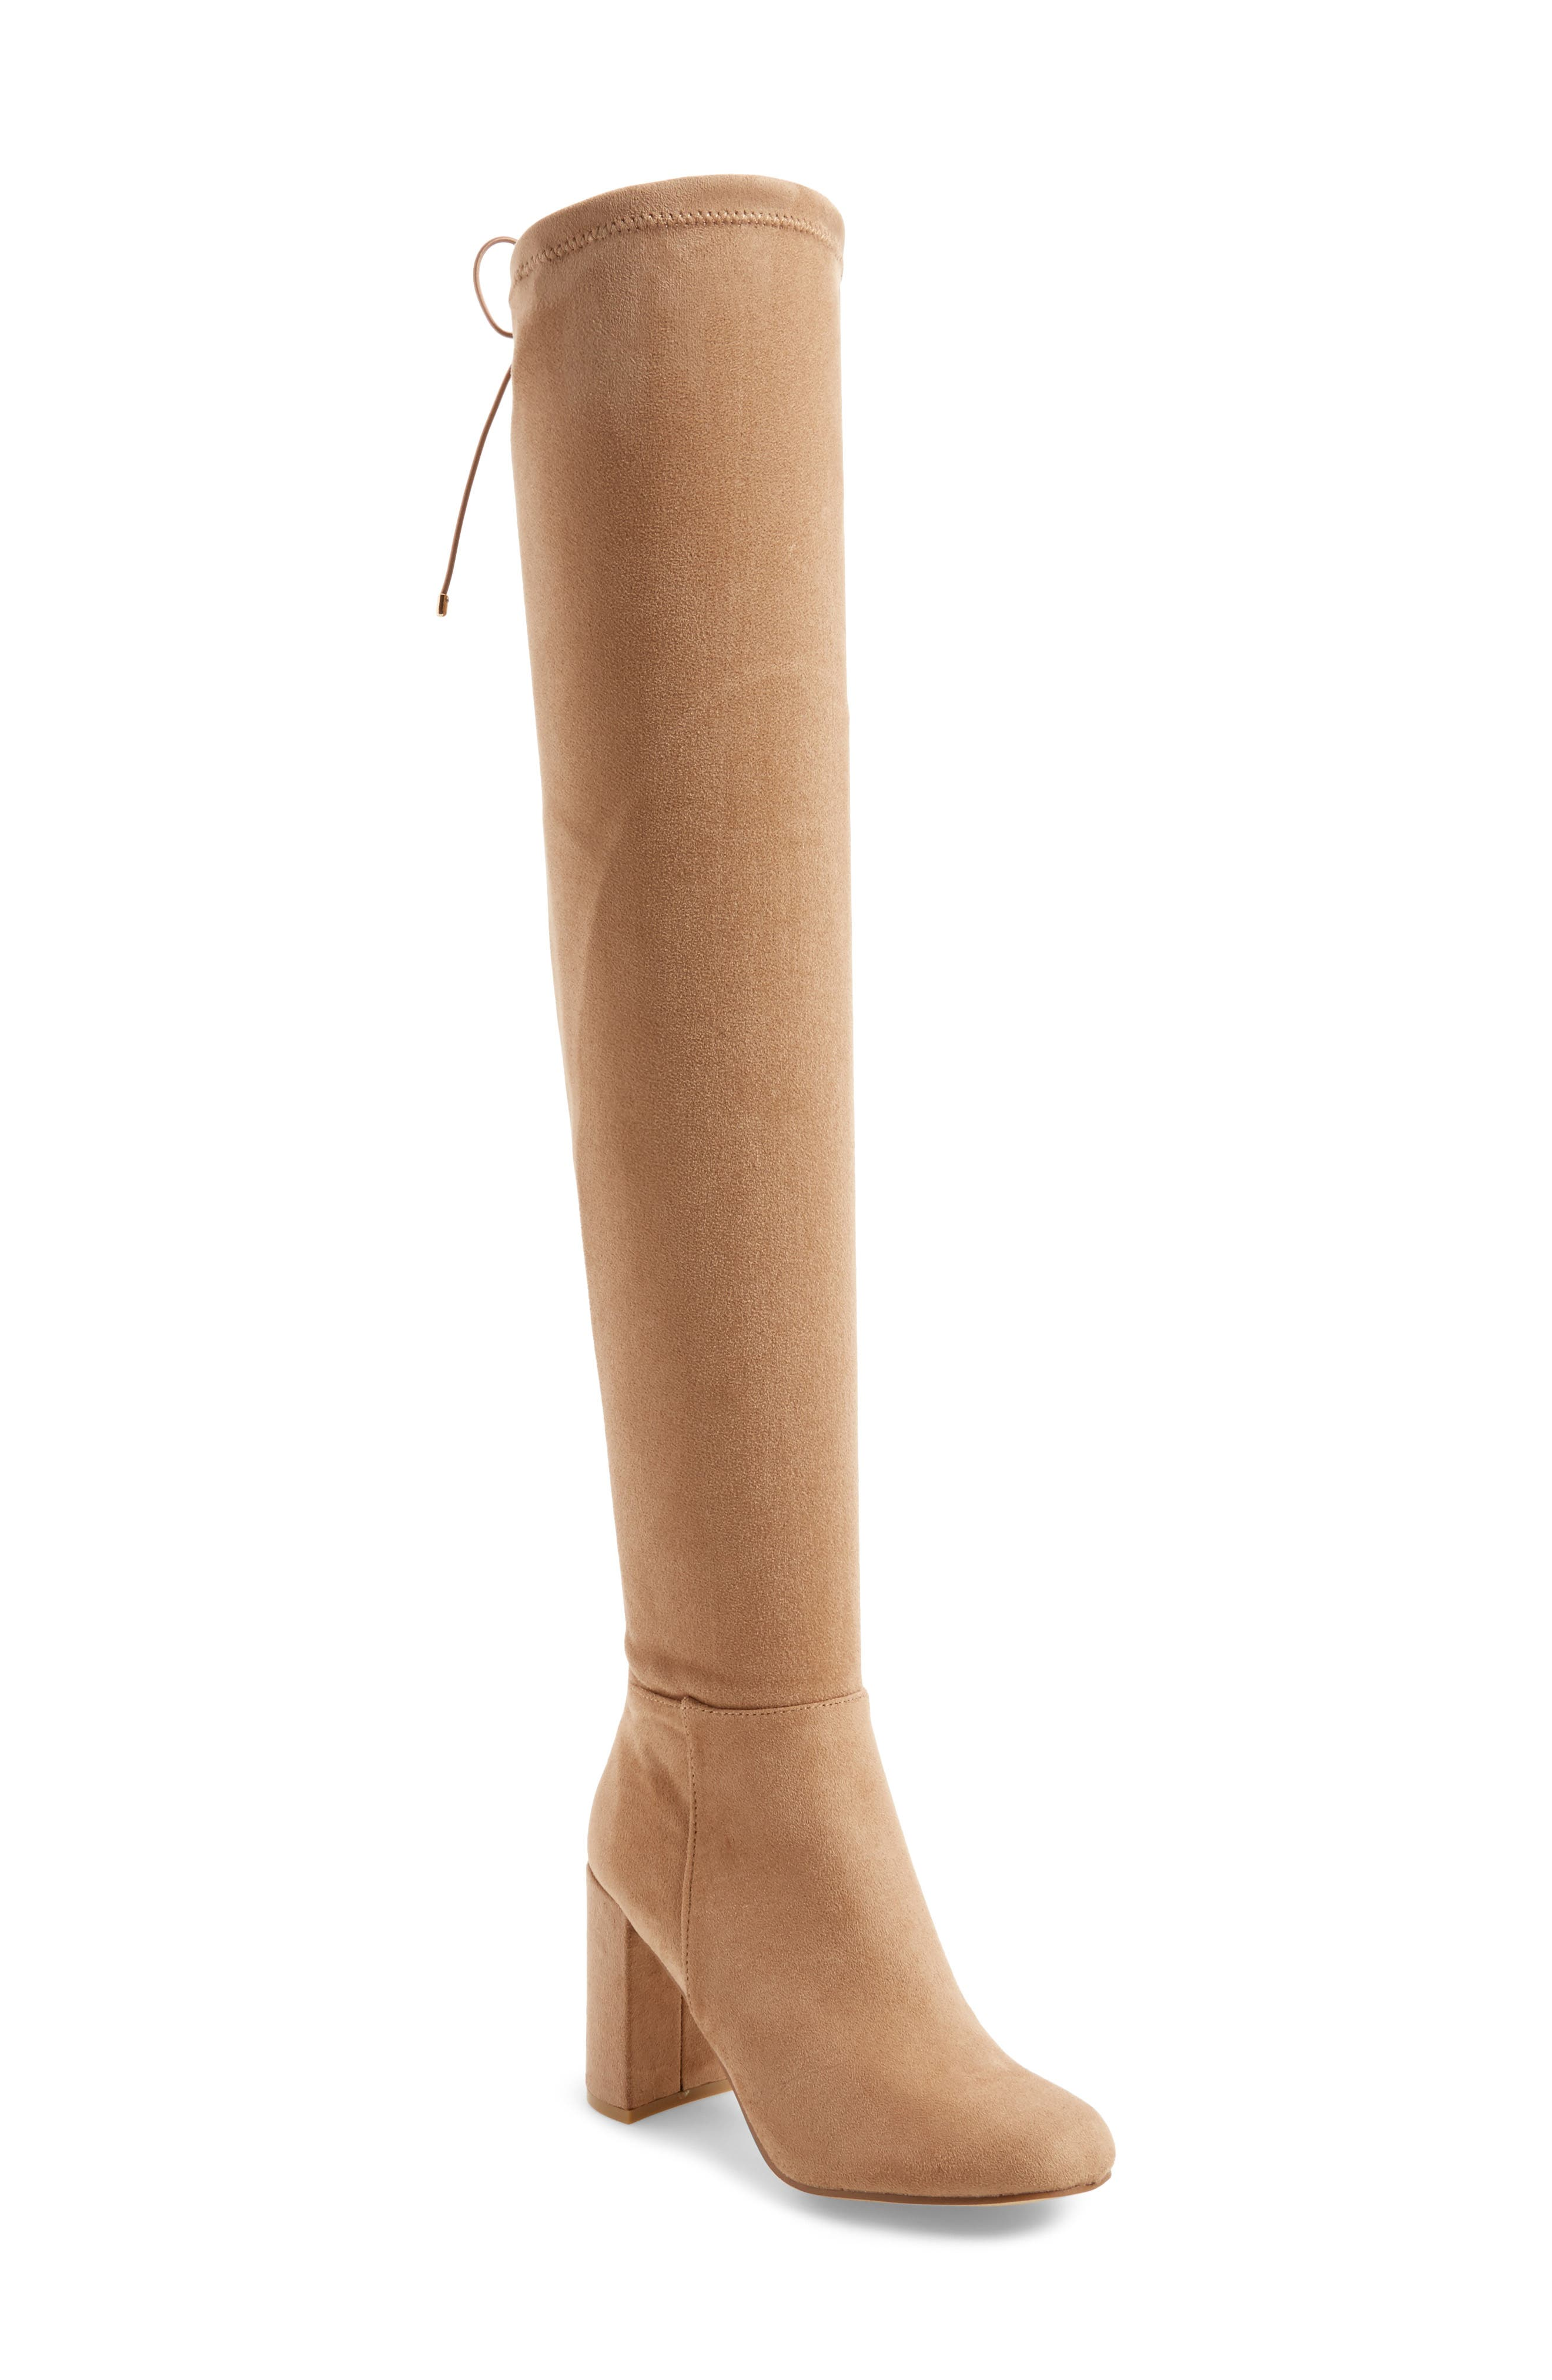 Krush Over the Knee Boot,                         Main,                         color, Mink Suede